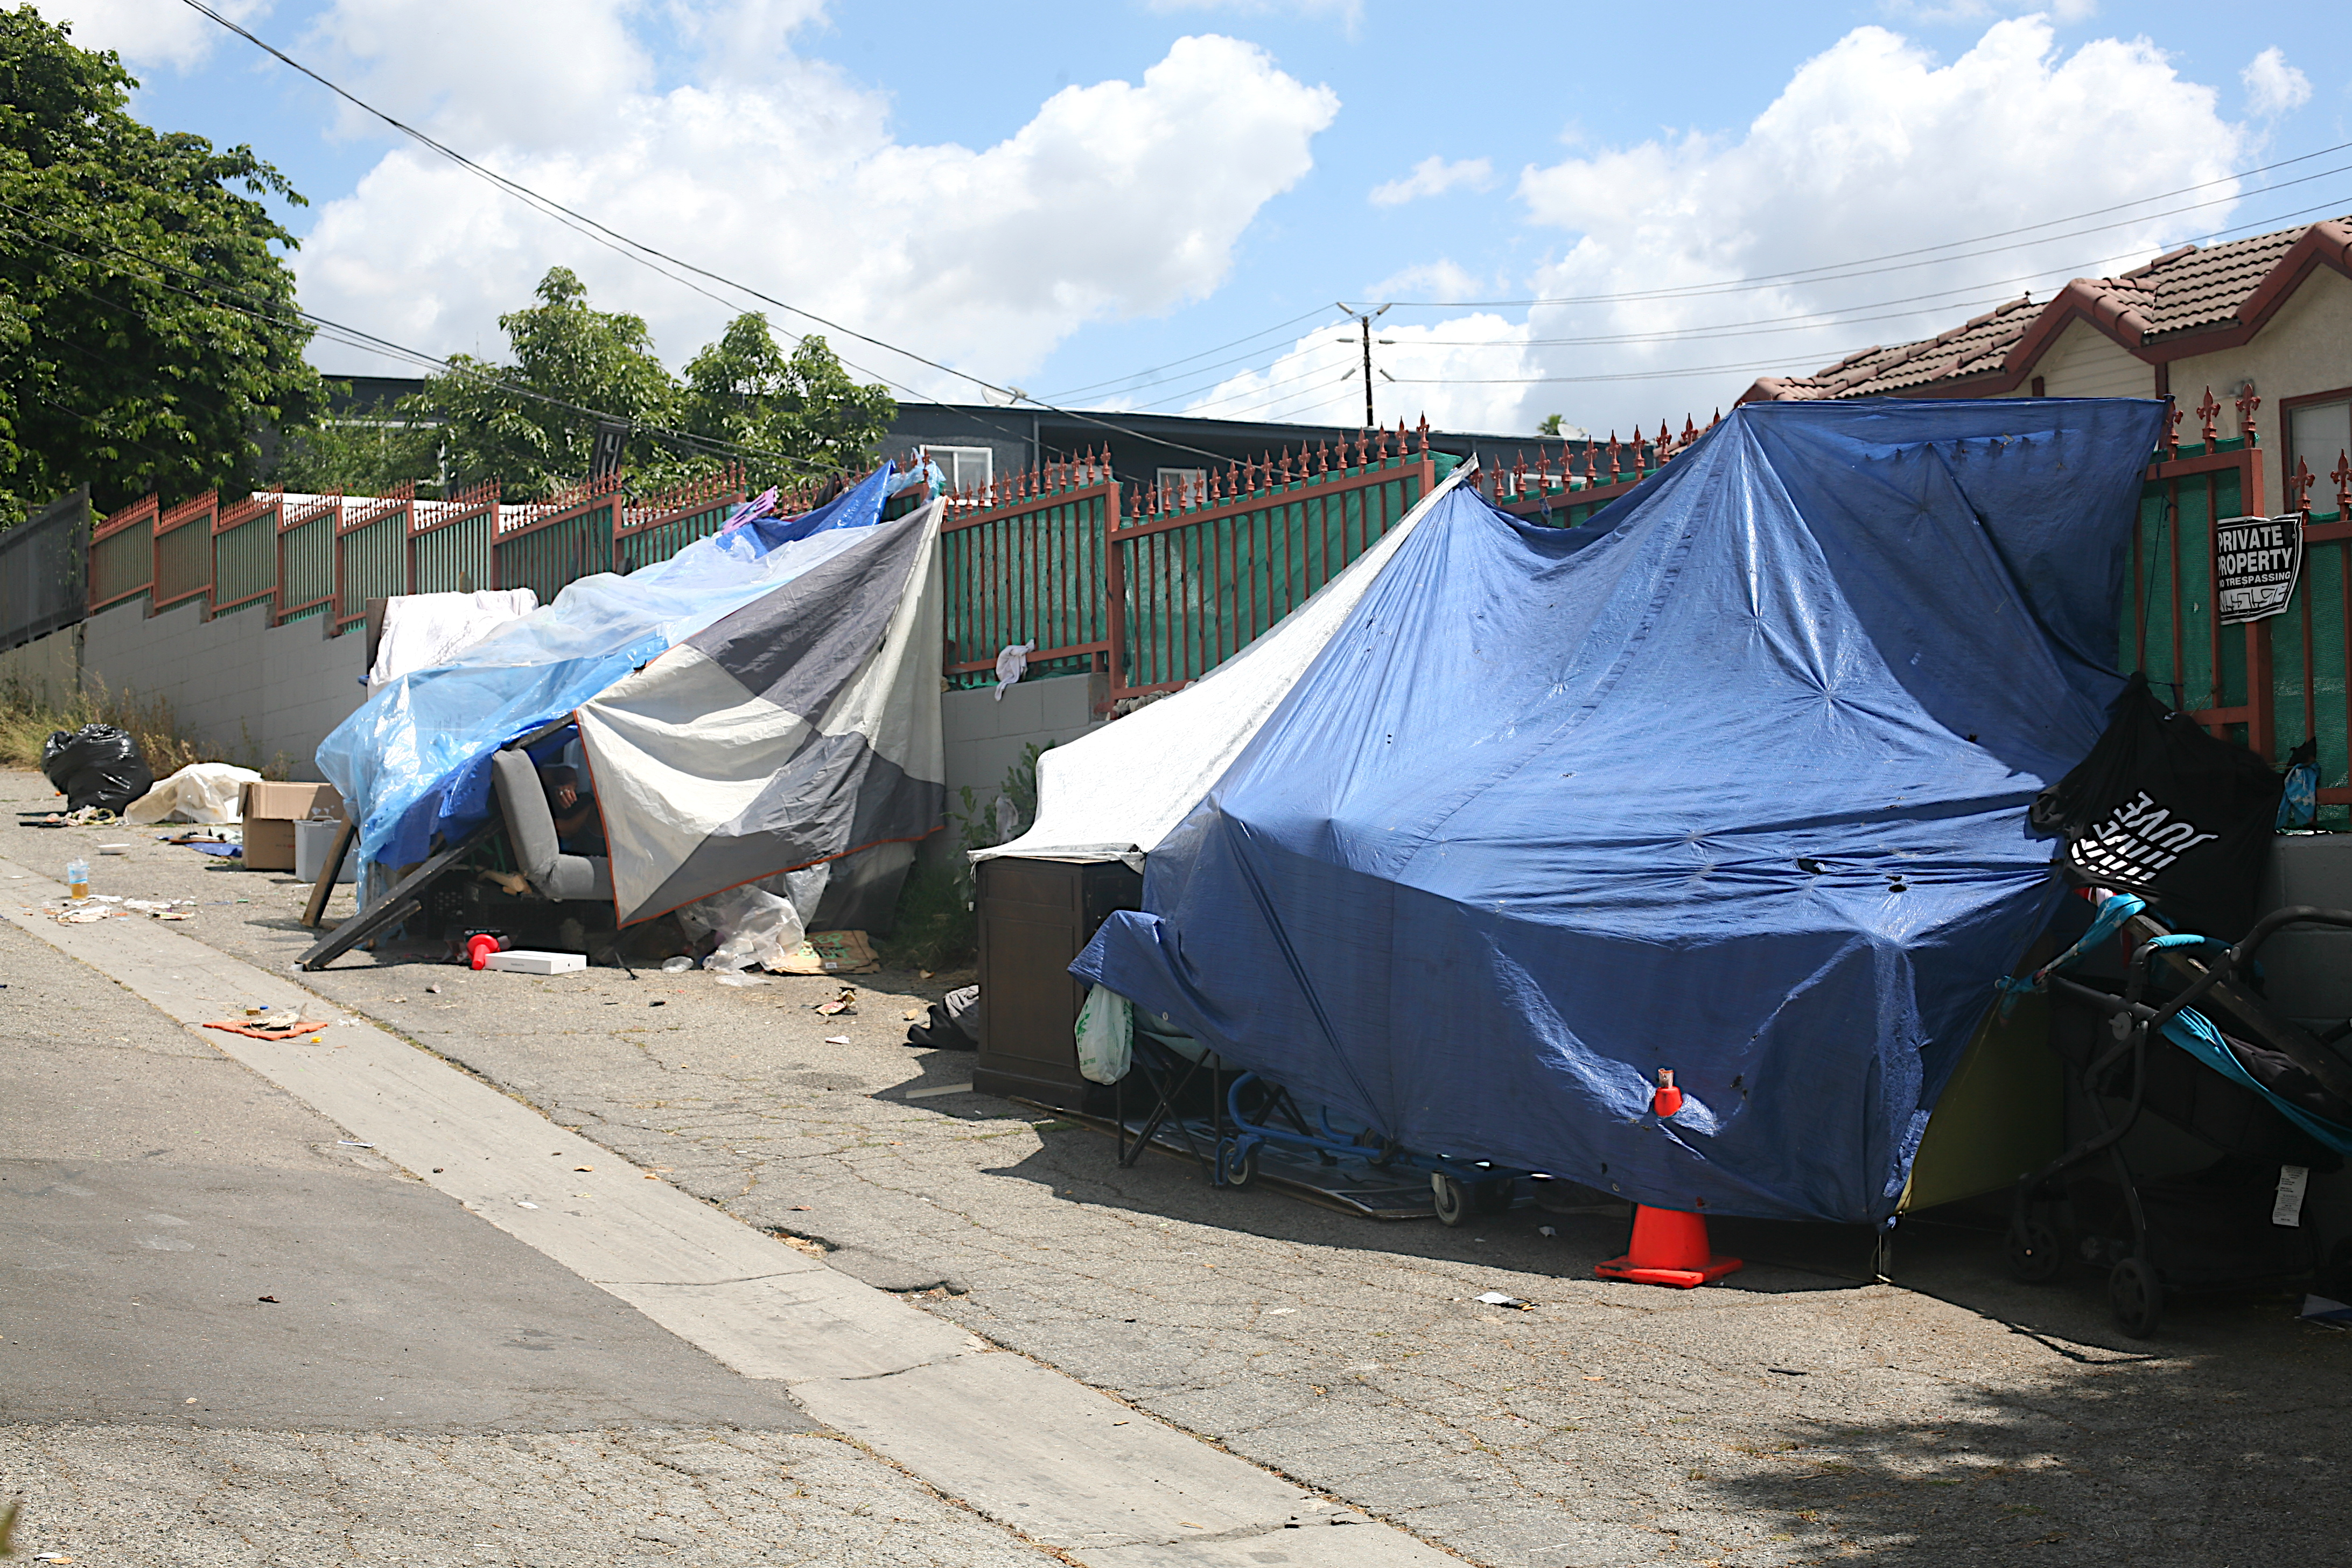 A homeless encampment in East Hollwood, Los Angeles